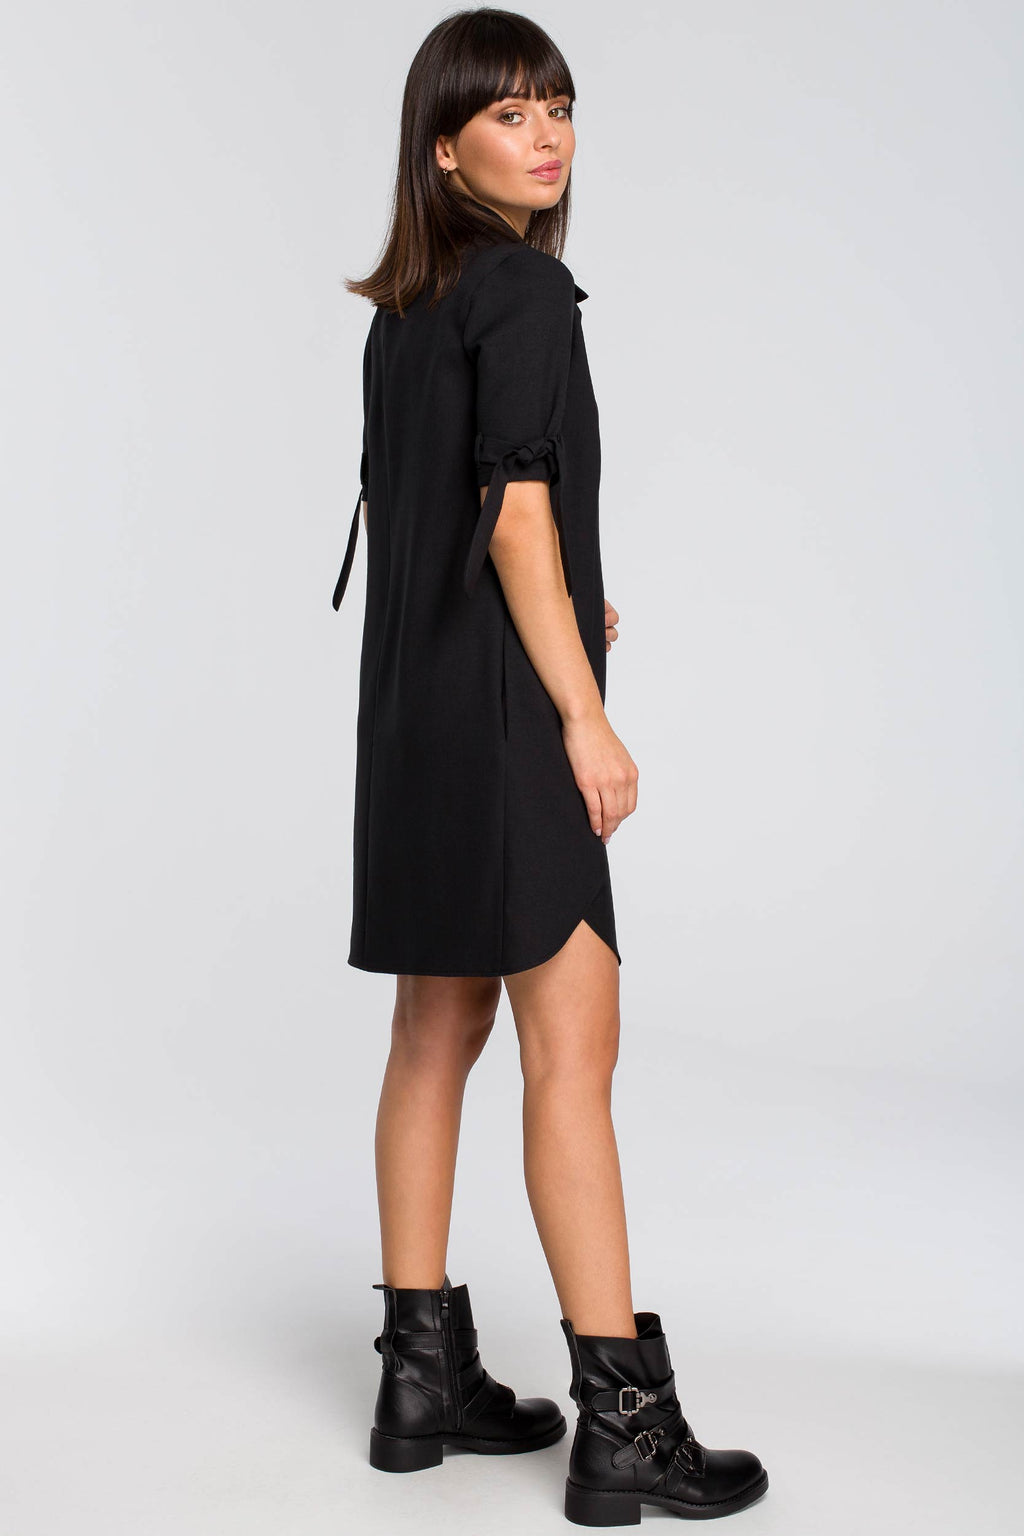 Black Tunic Dress With Short Tied Sleeves